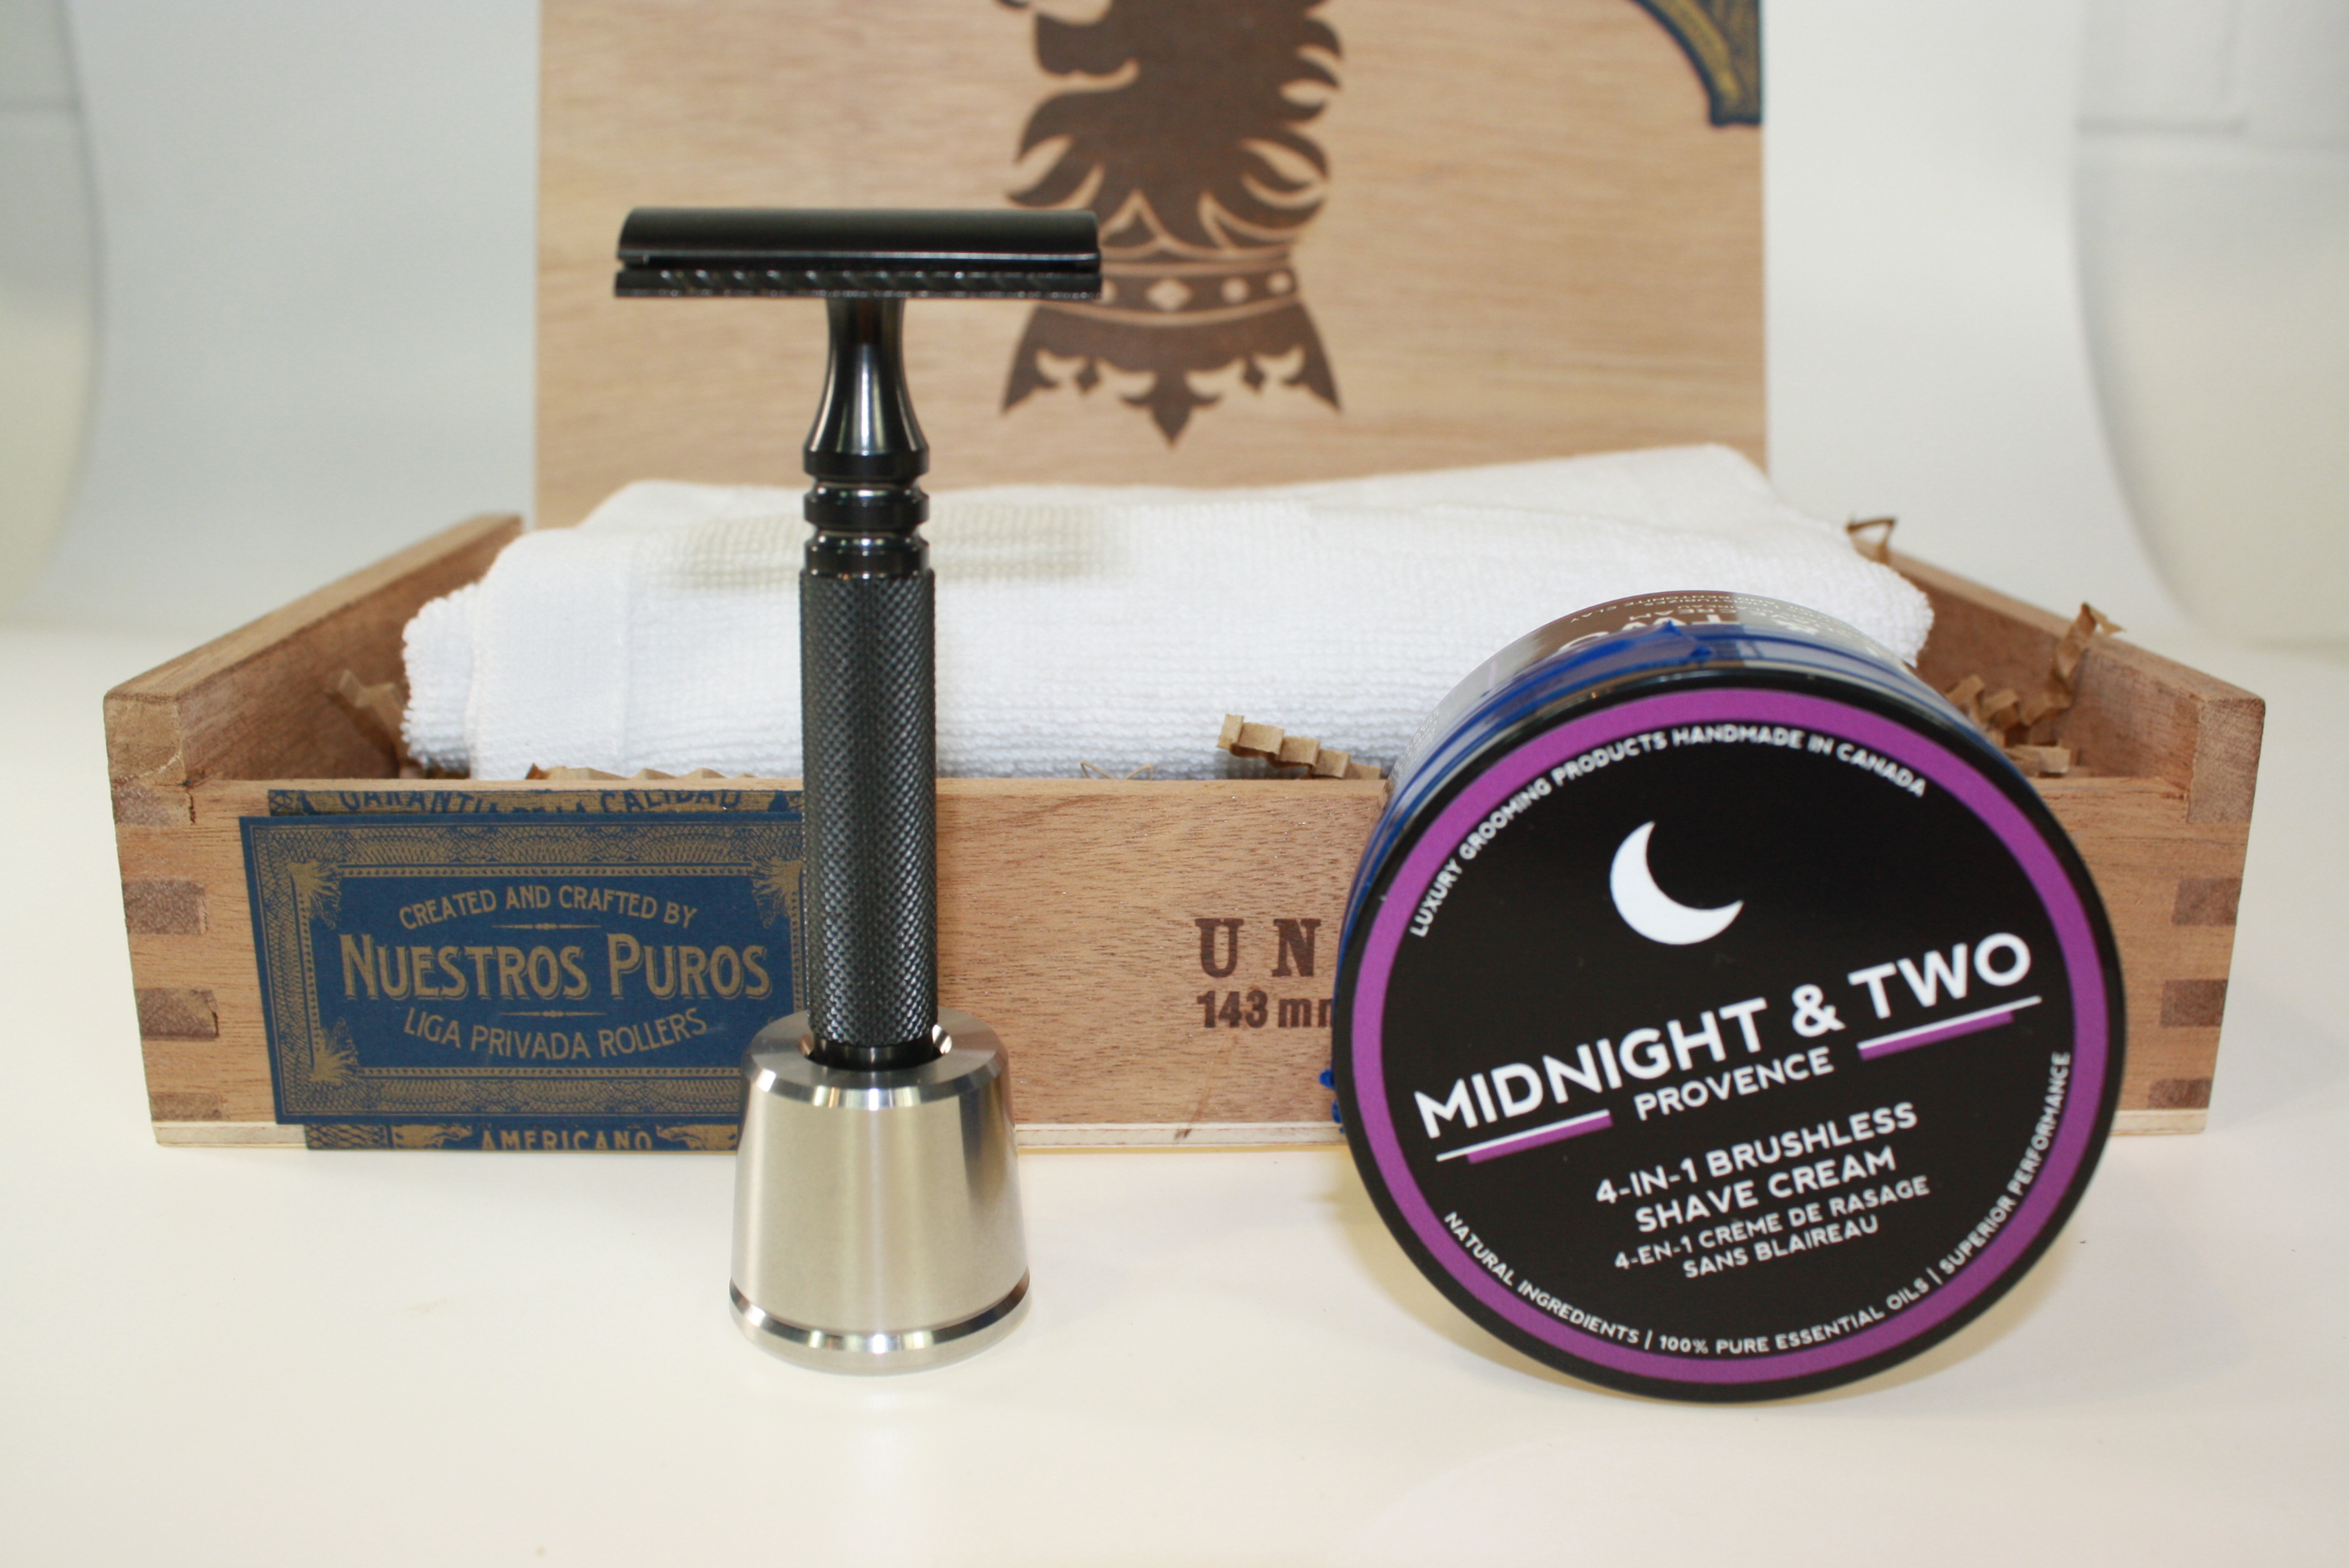 Weekly Giveaway #14 – Win a Cigar Box with Samples